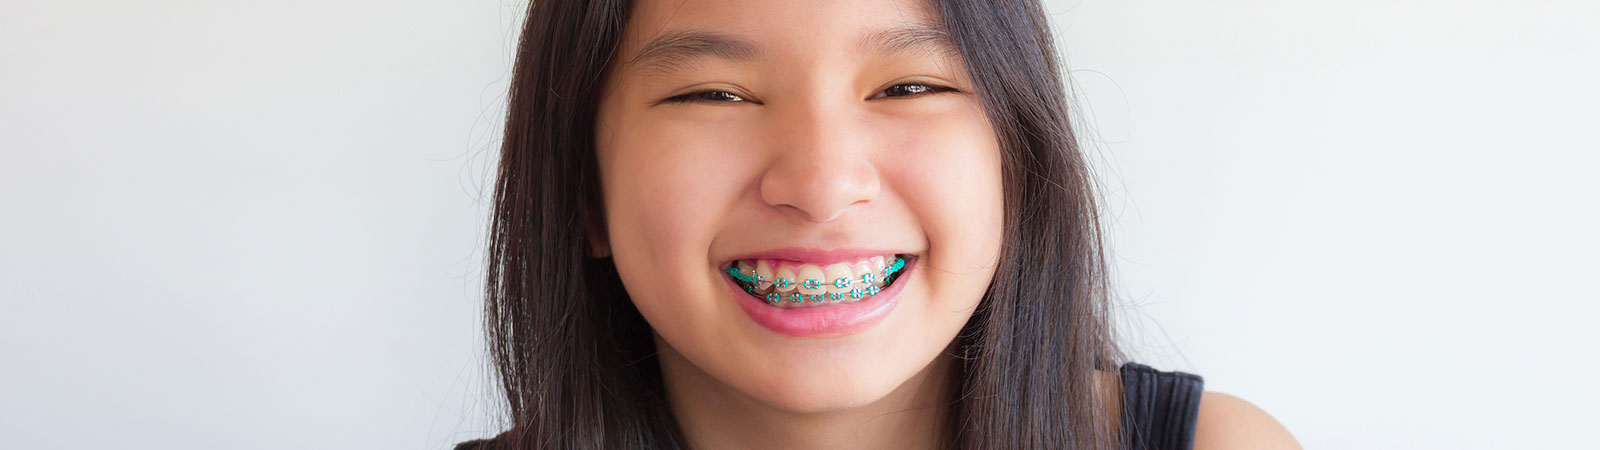 teen with braces smiling to the camera